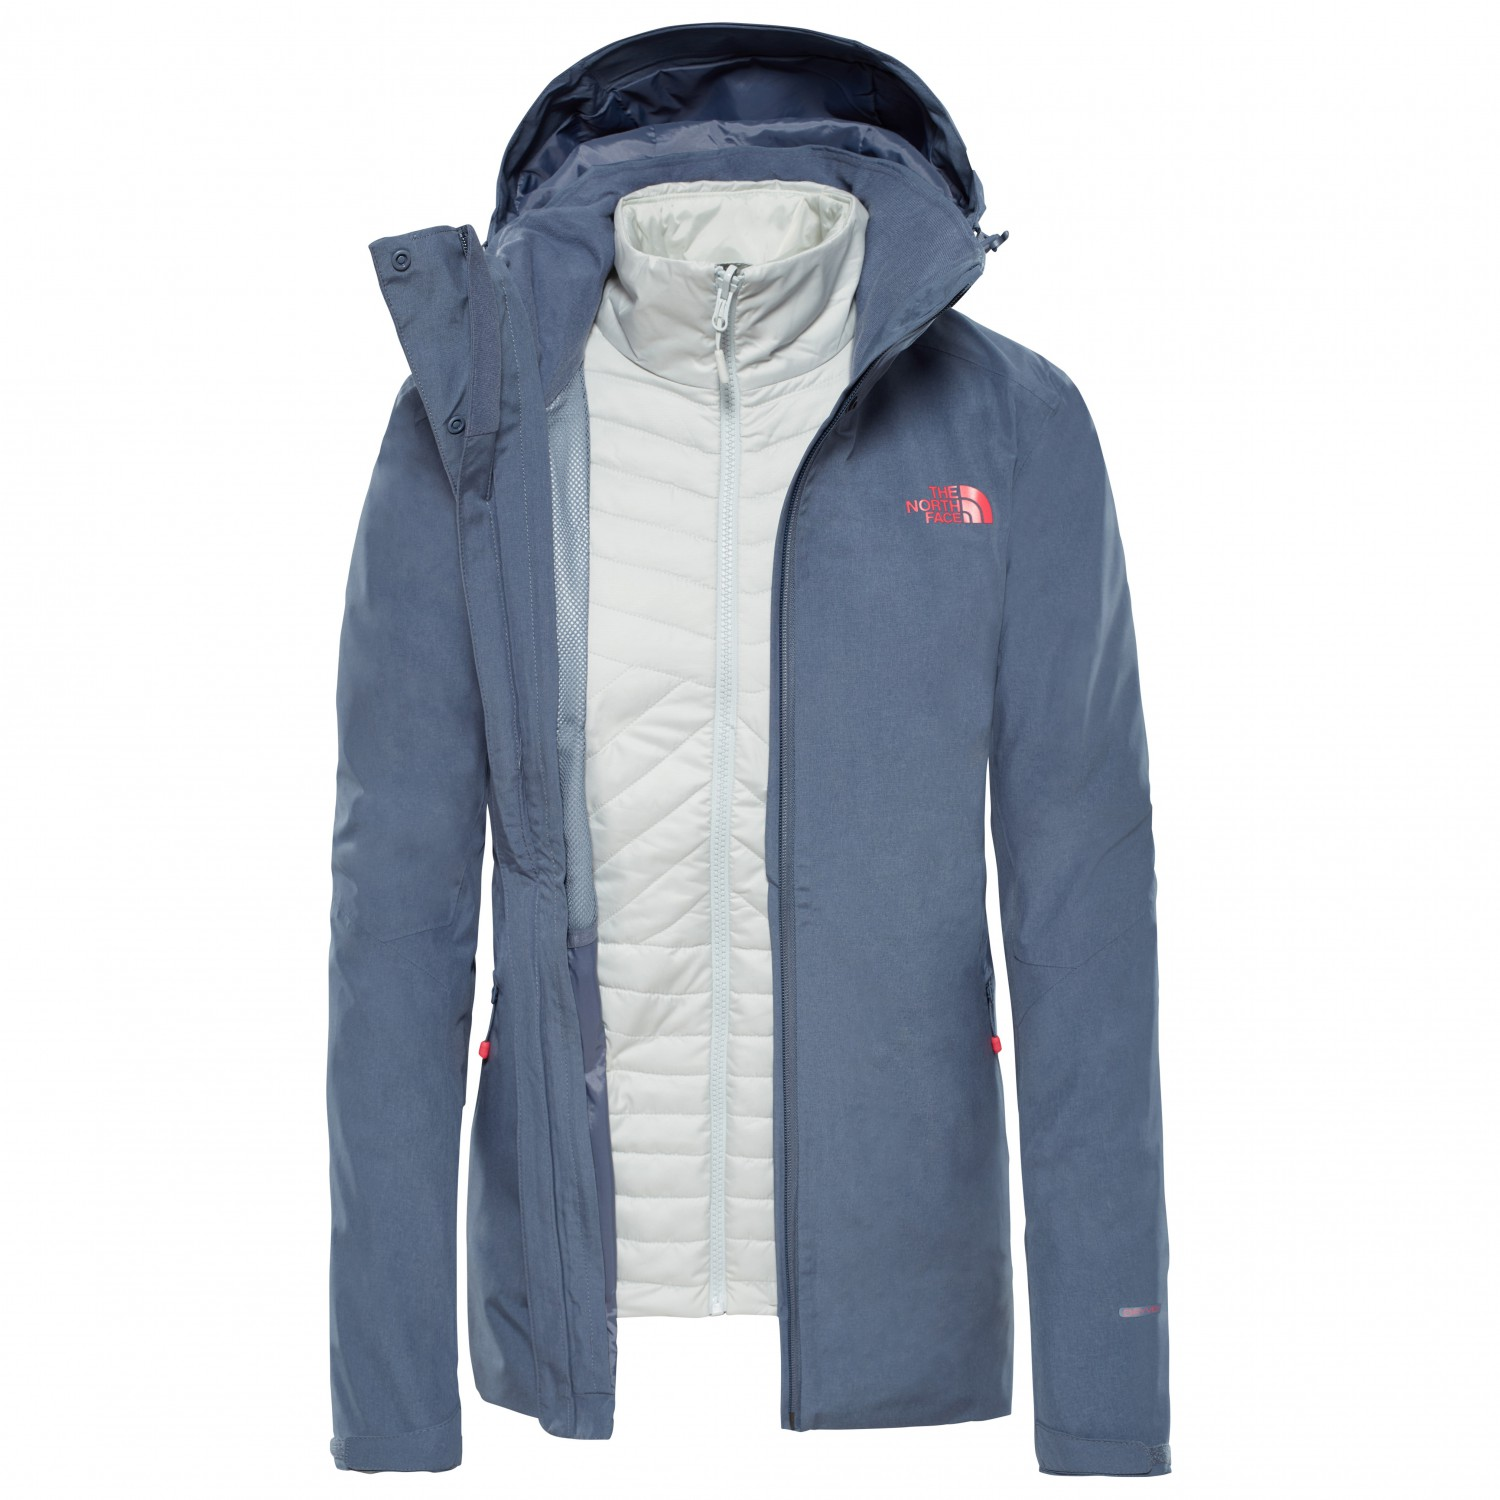 441a81072 coupon for the north face triclimate 3 in 1 jacket 5c48c 68c38